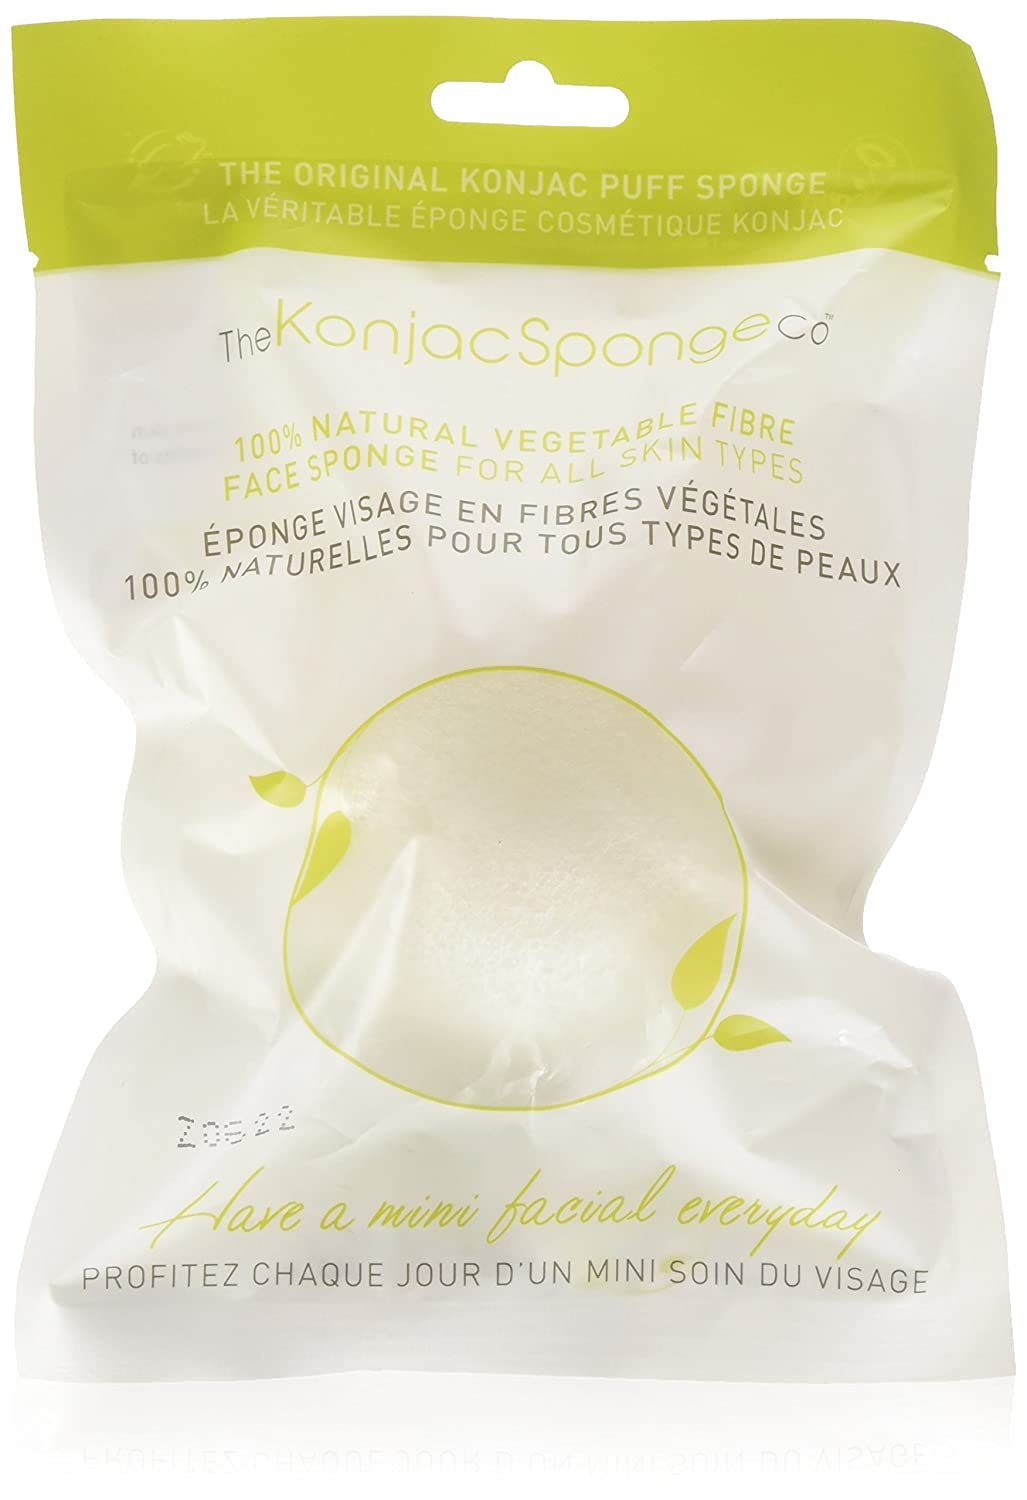 The Konjac Sponge Company Facial puff sponge pure white, 1 Count 2020FD